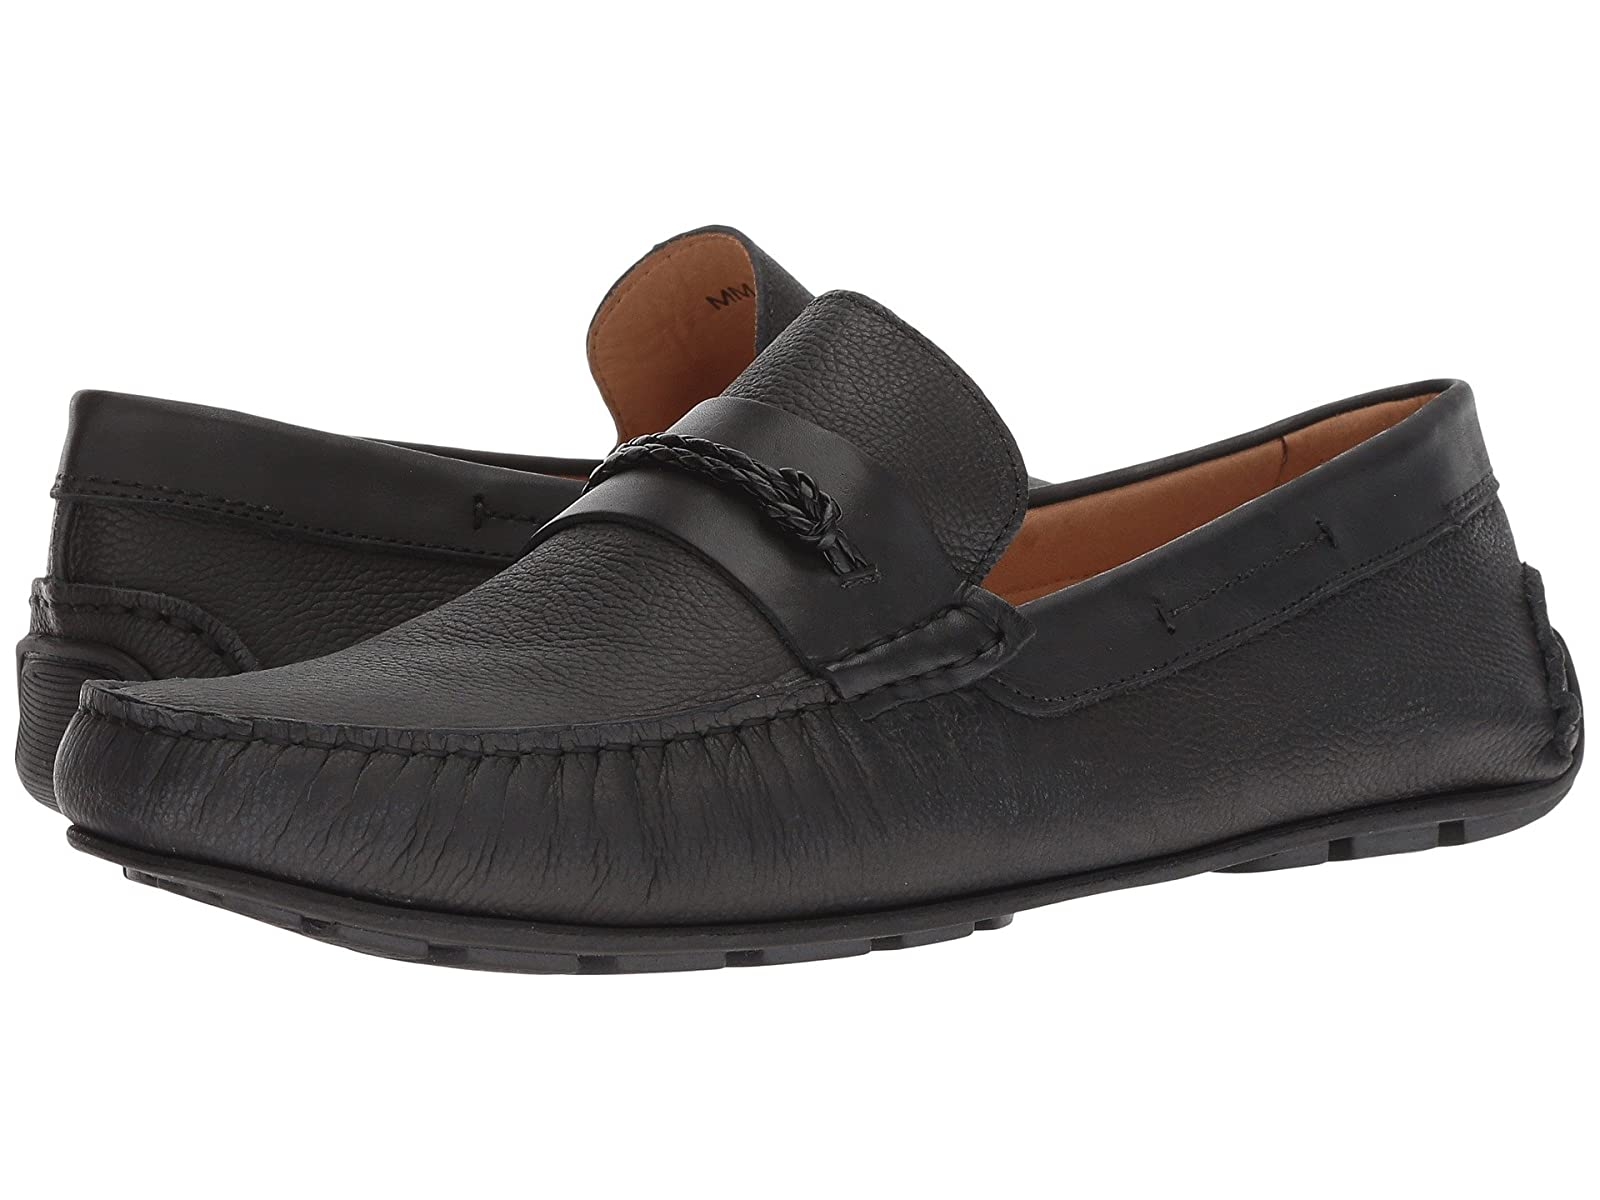 Massimo Matteo Rope Bit DriverAtmospheric grades have affordable shoes